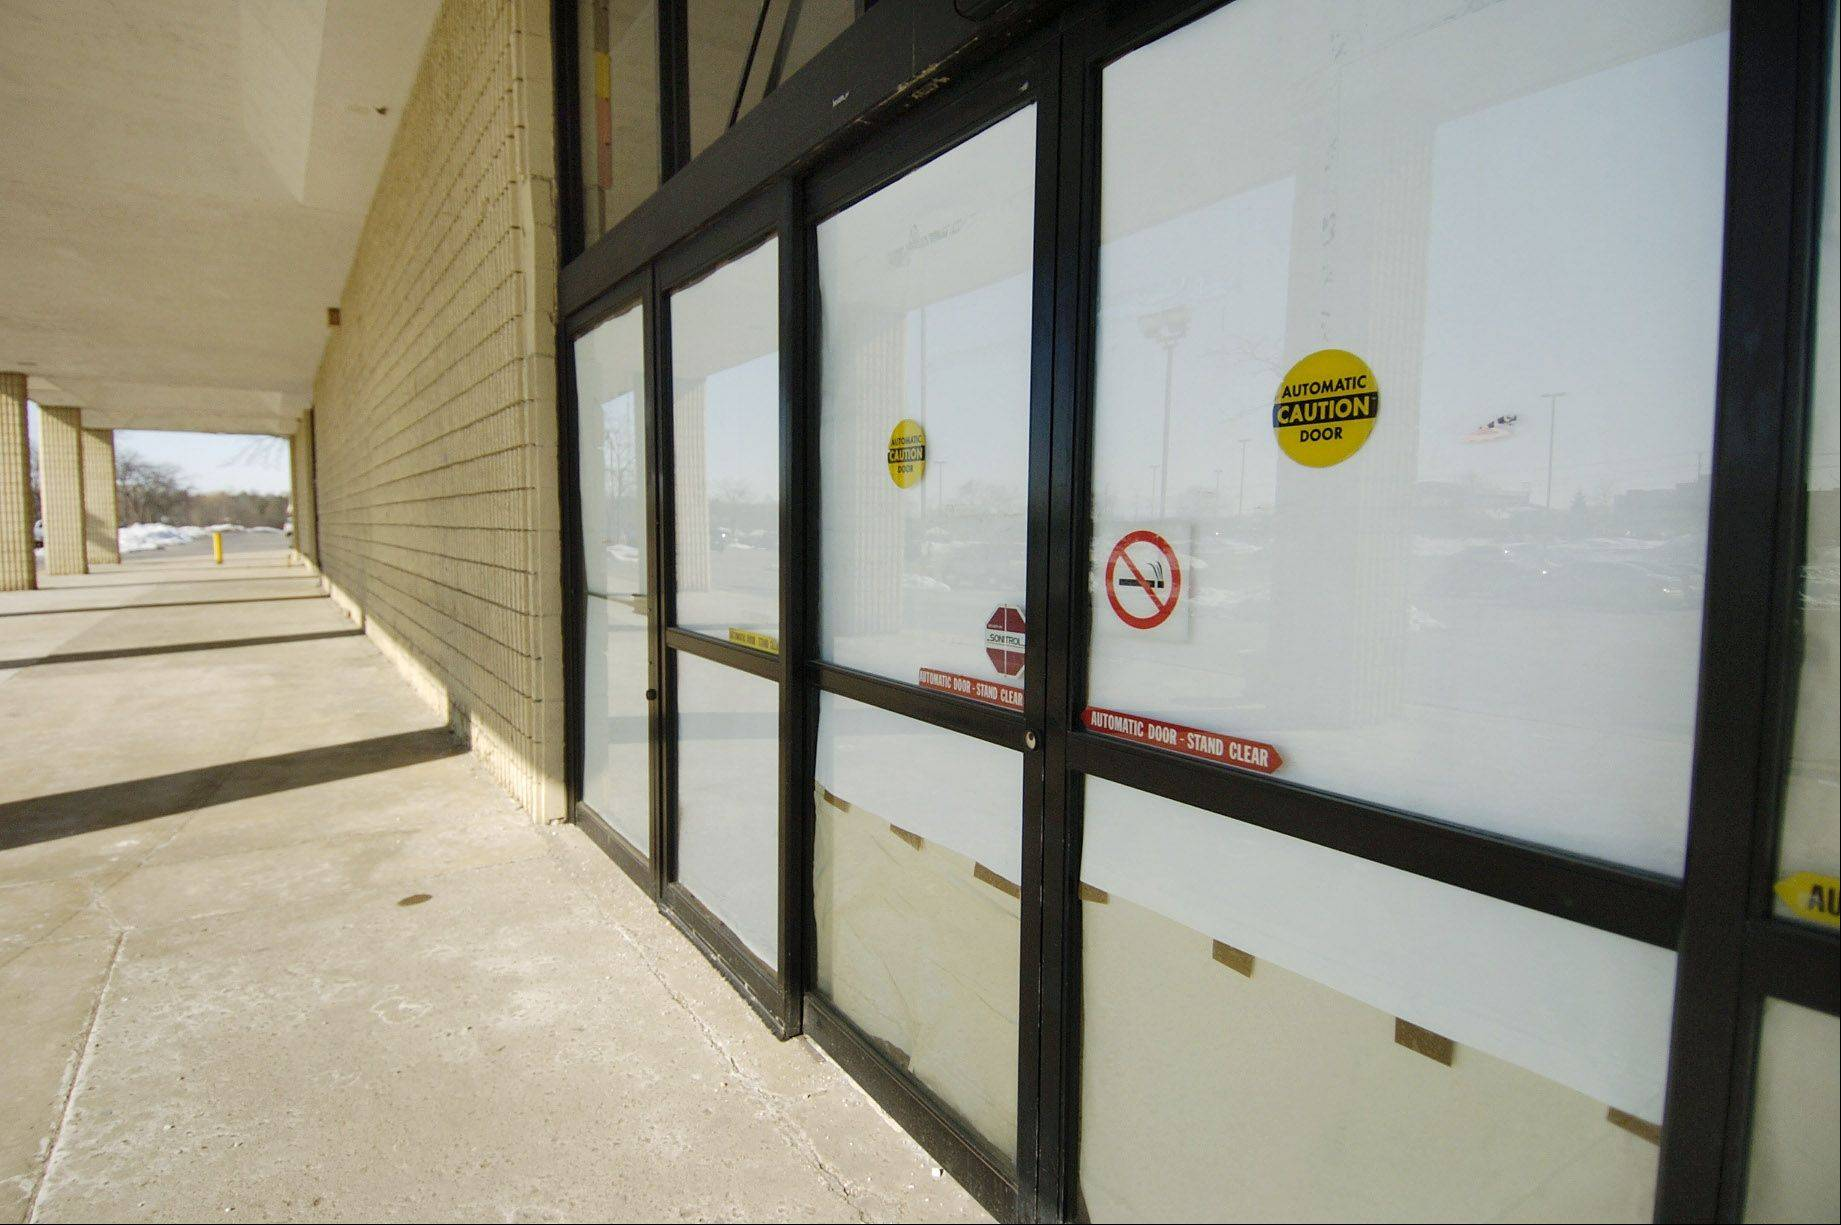 Paper covered the front windows of Hoffman Estates' Menards store after it closed in November 2008. The building has since been demolished. Village officials now are trying to recruit a new hardware store to town, as well as a would-be operator willing to invest in it.